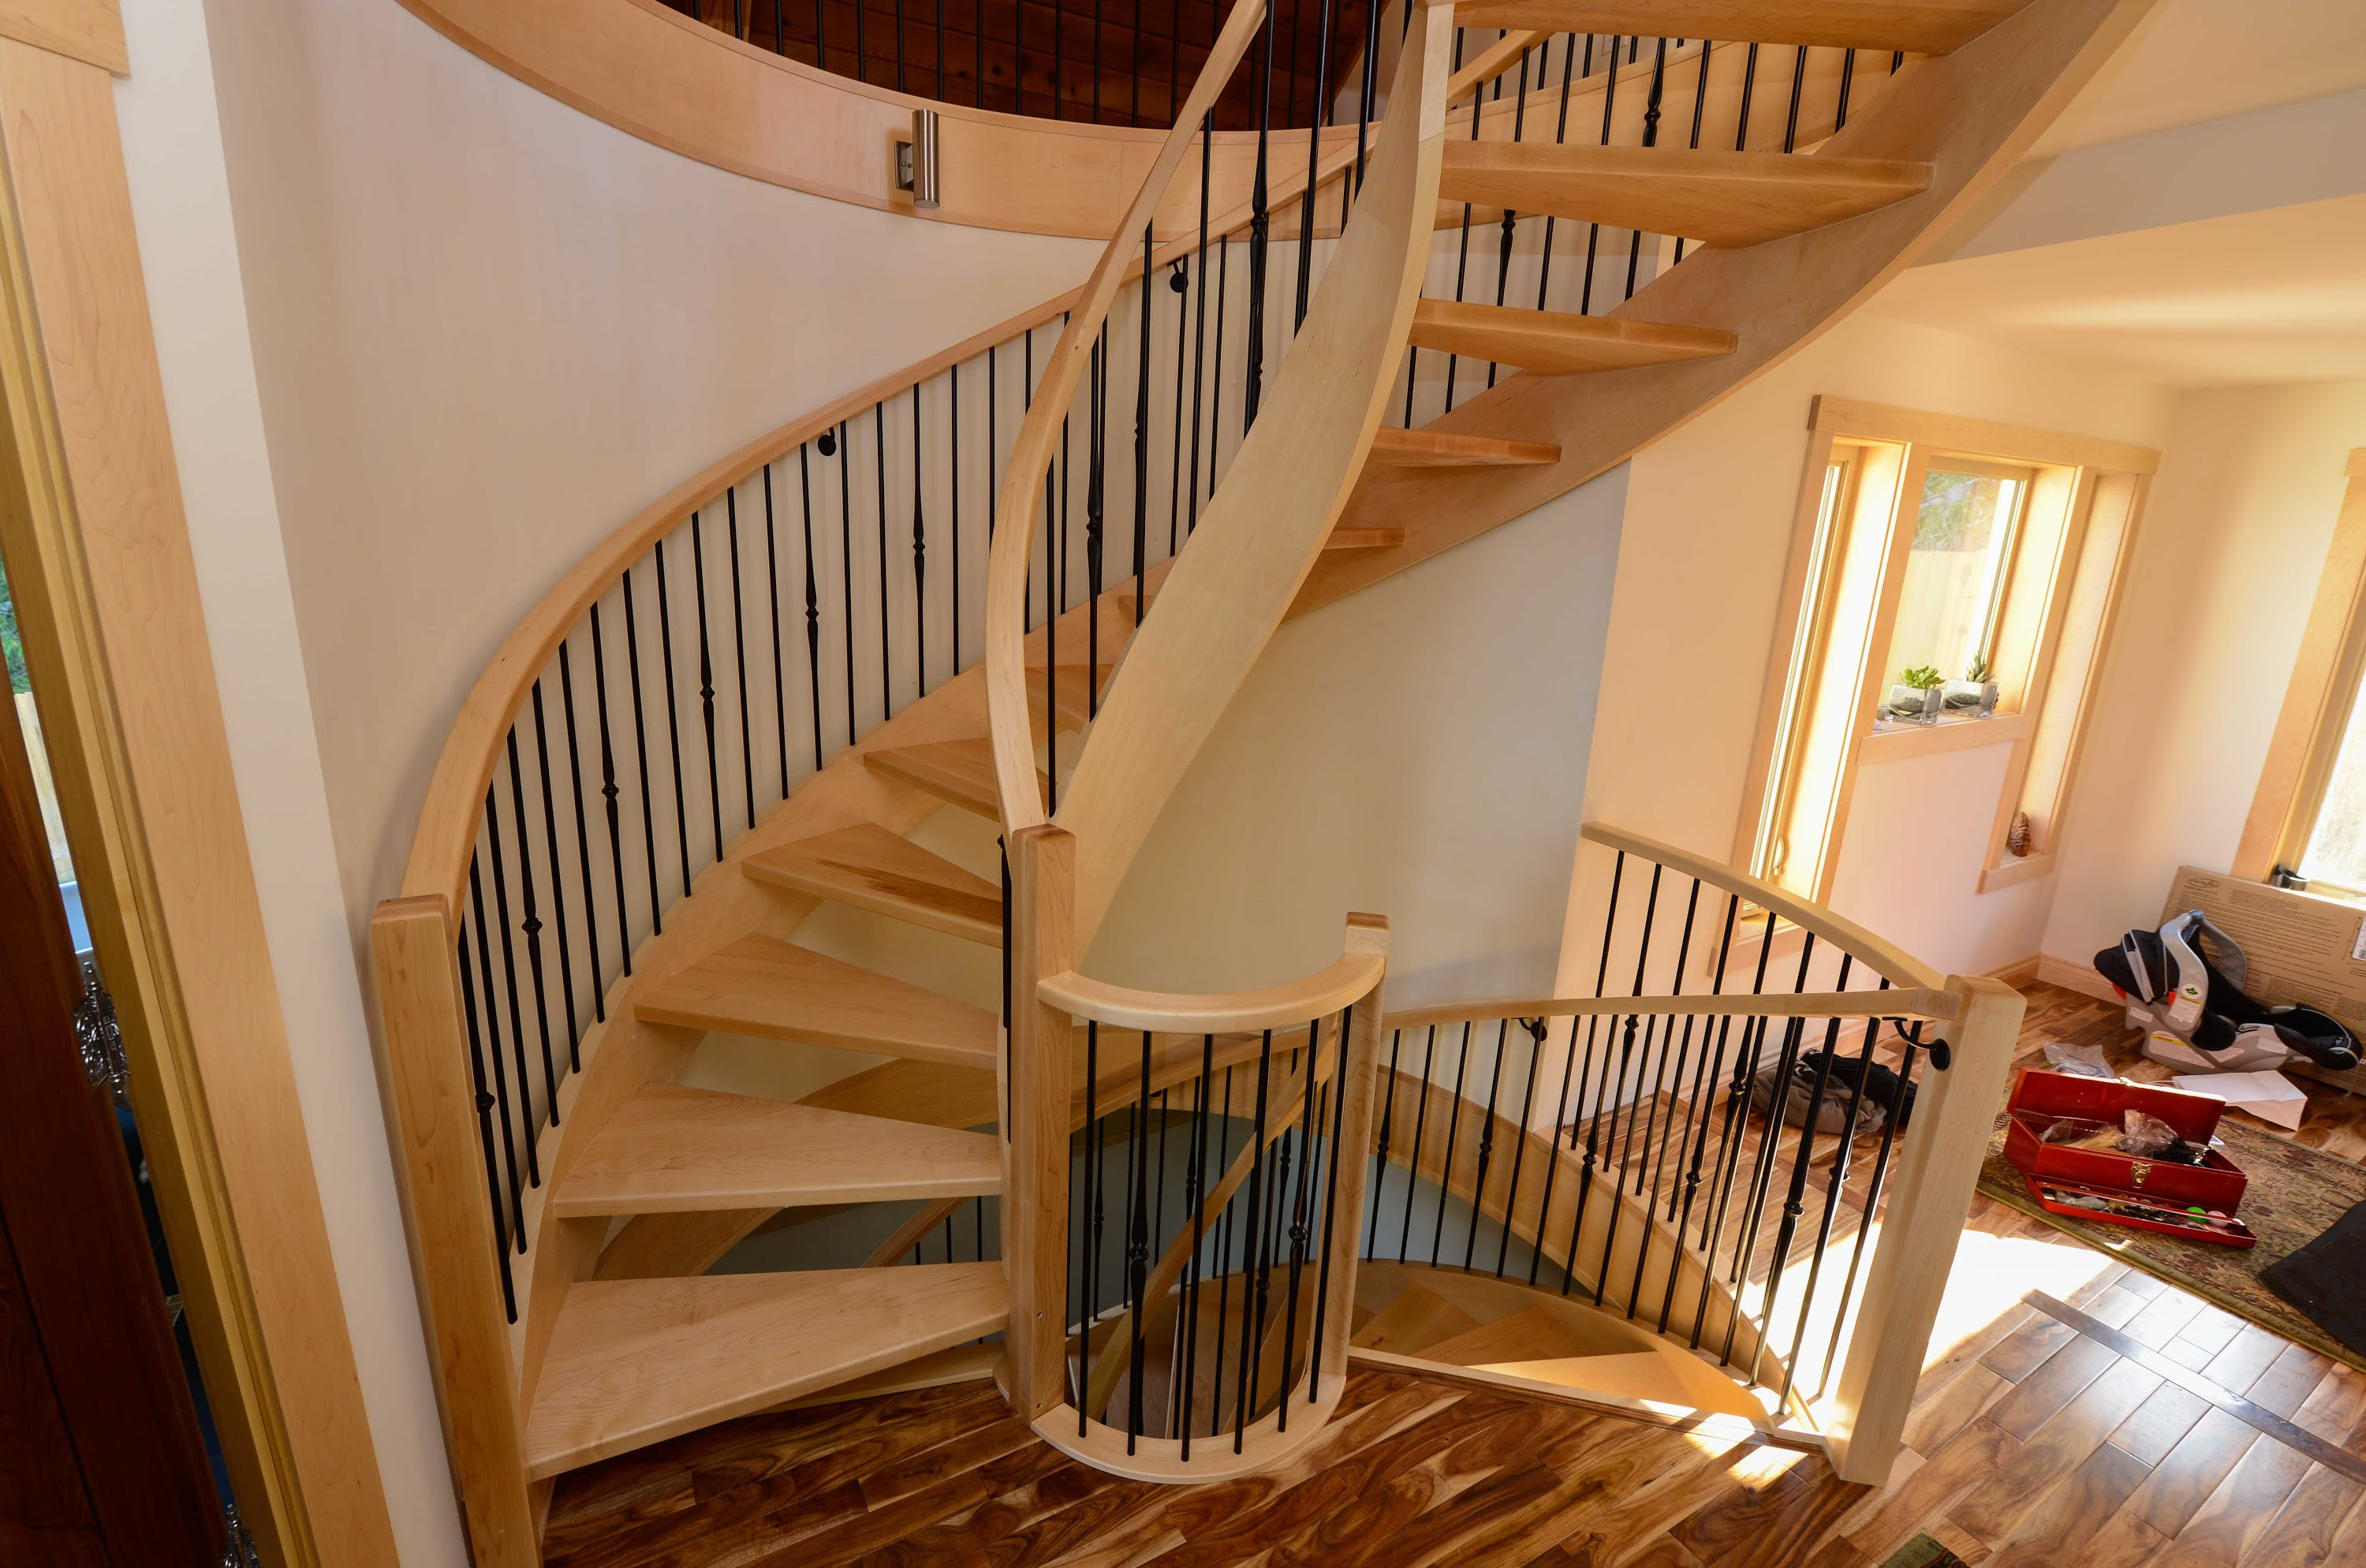 Botched Spiral Staircase Bad Carpenters Rant The